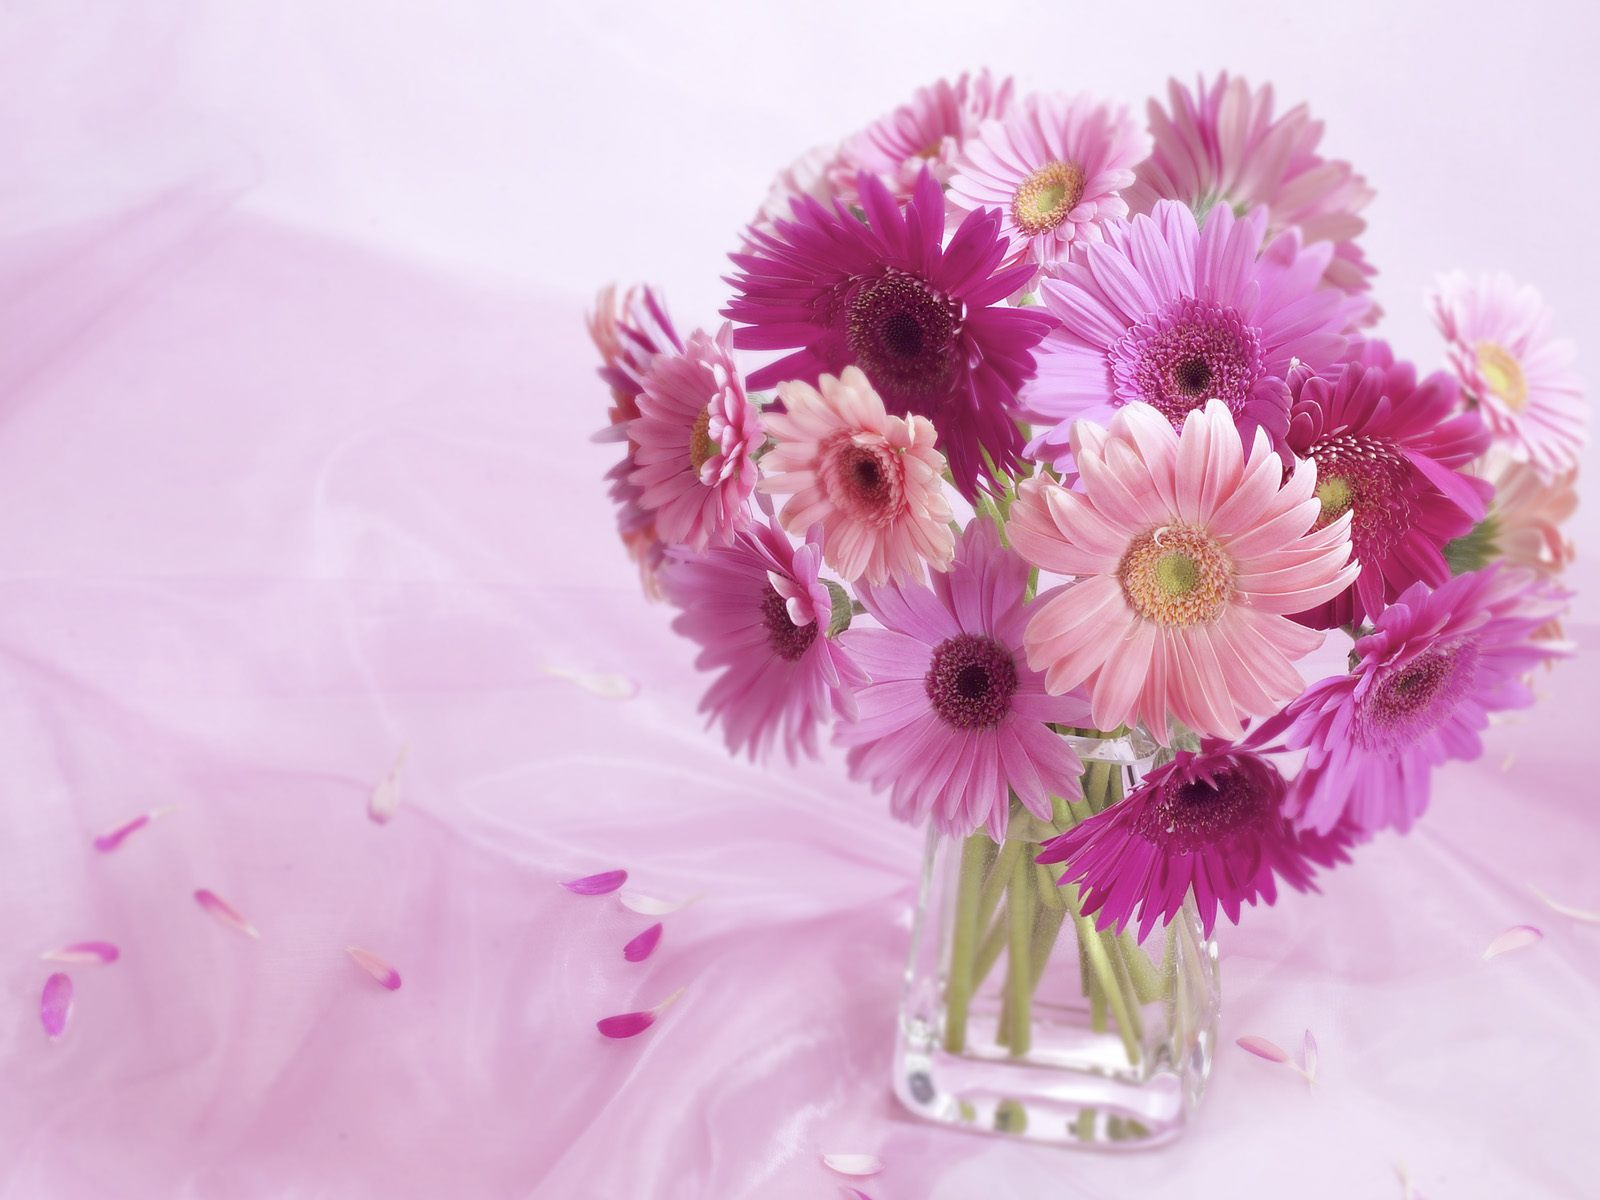 Gerbera Daisy Arrangement 132.63 Kb